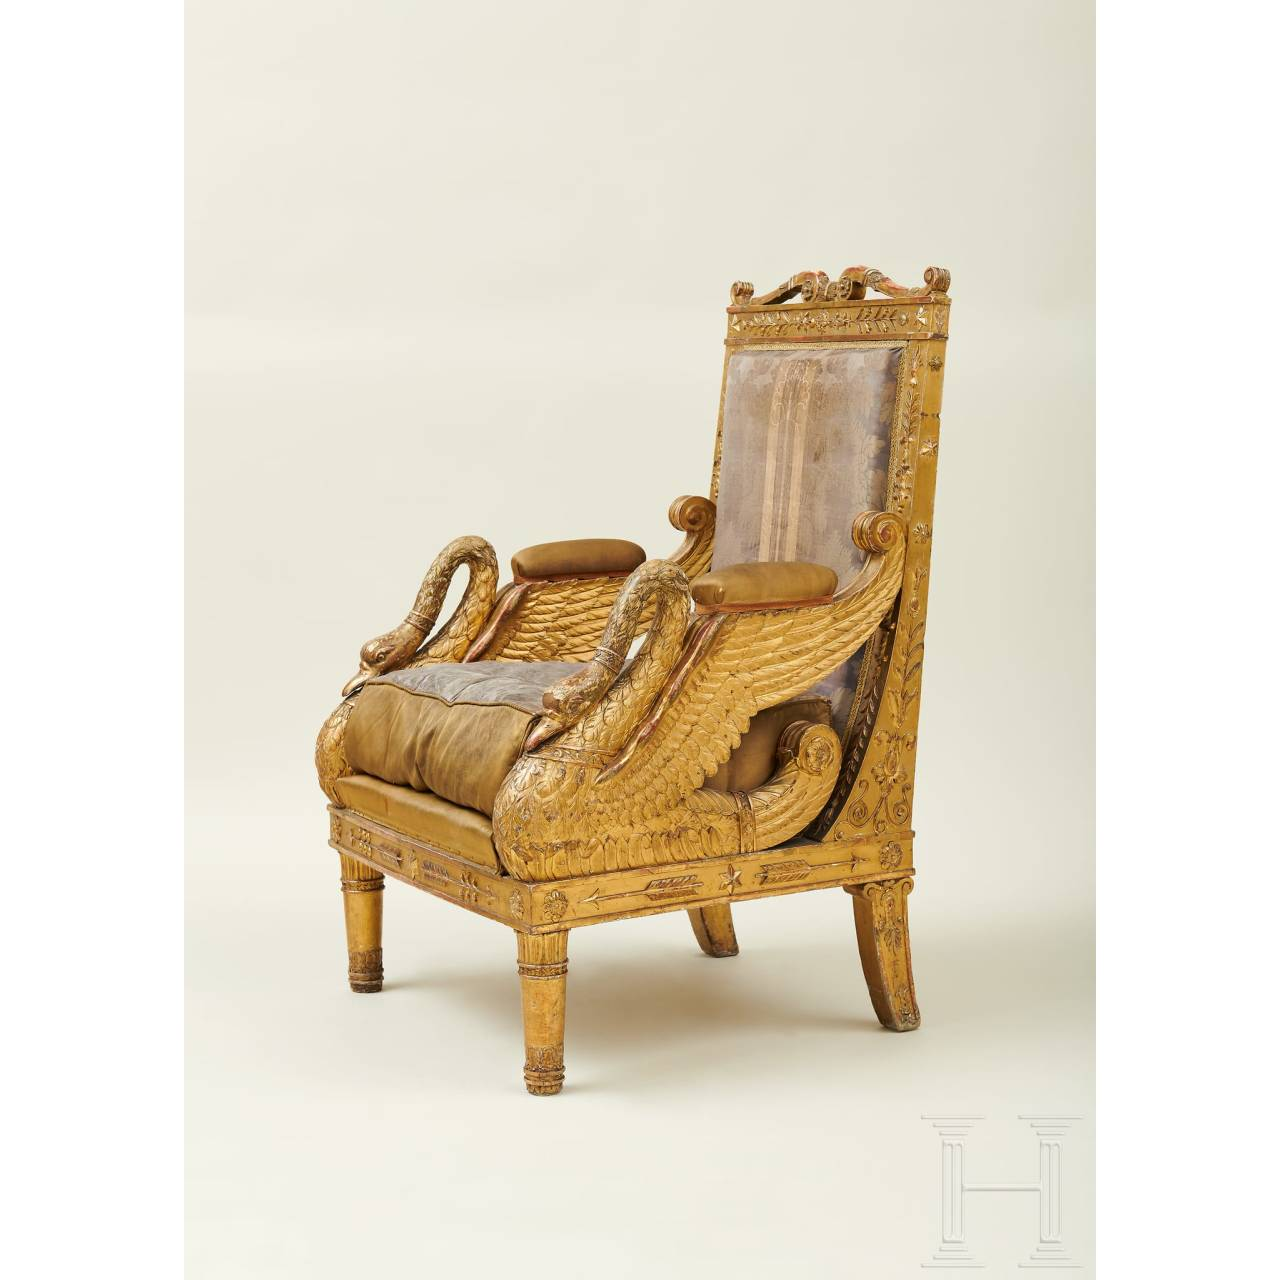 A splendid French armchair, Jacob model, early 19th century